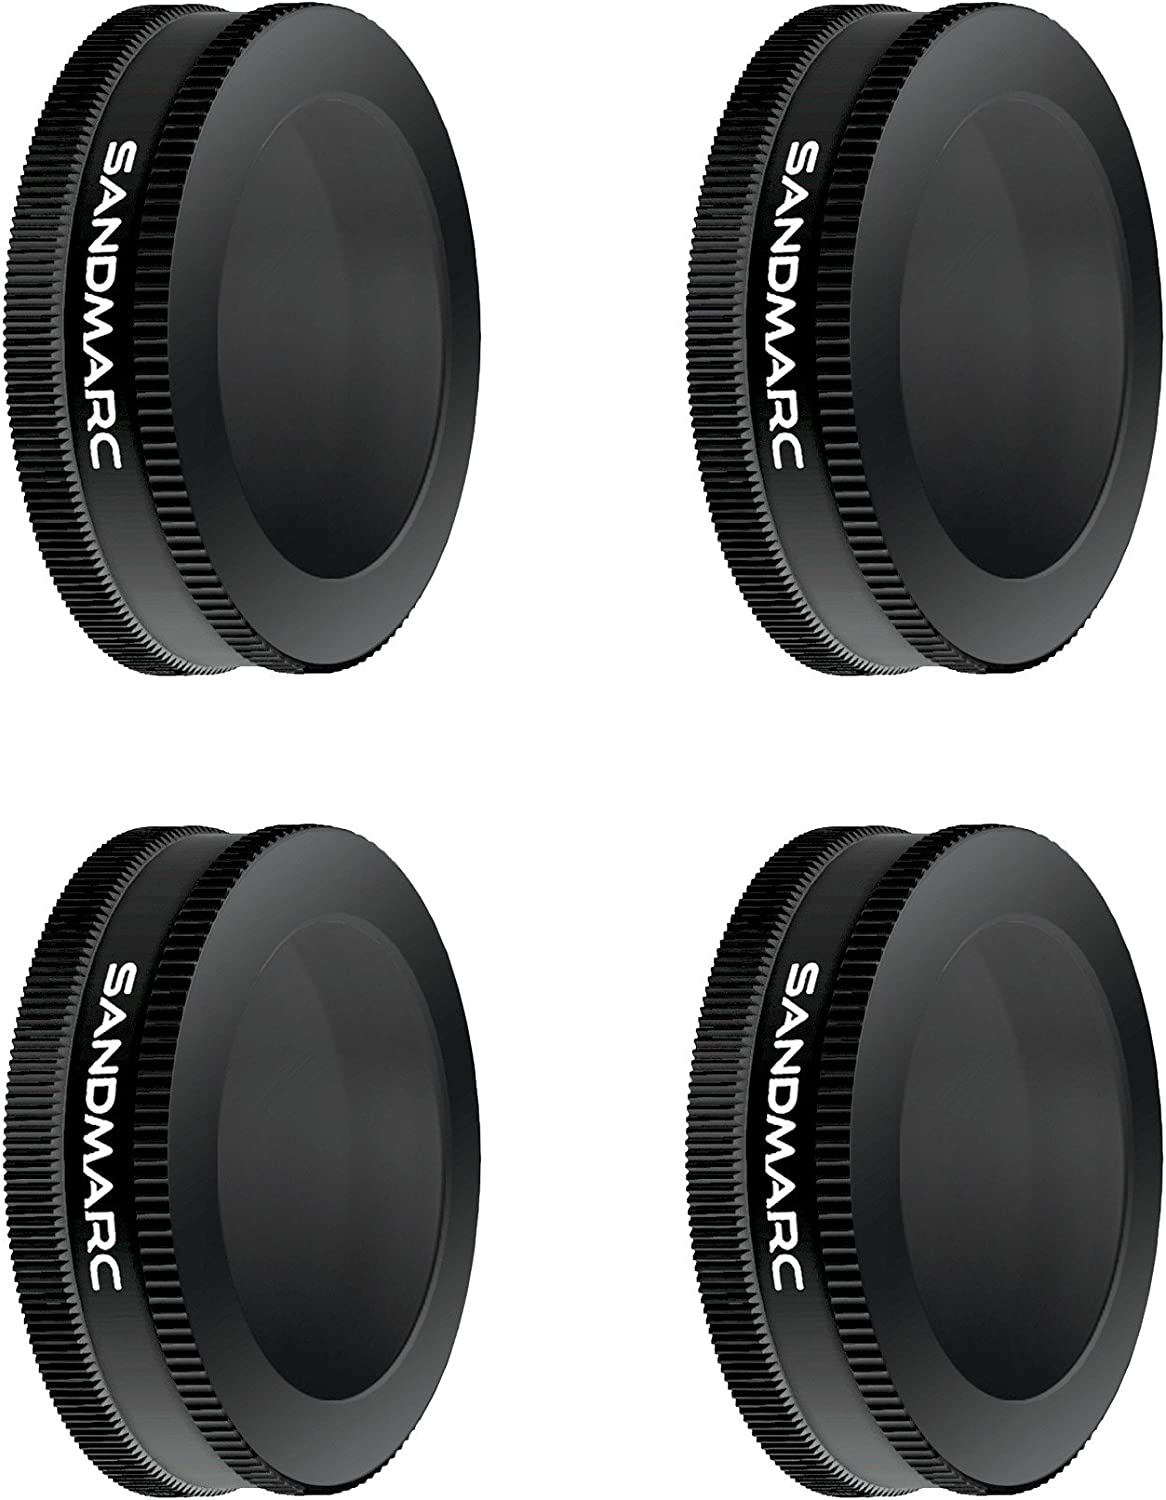 ND8 ND4 ND16 and Polarizer Filter Set SANDMARC Aerial Filters for DJI Mavic Pro /& Platinum